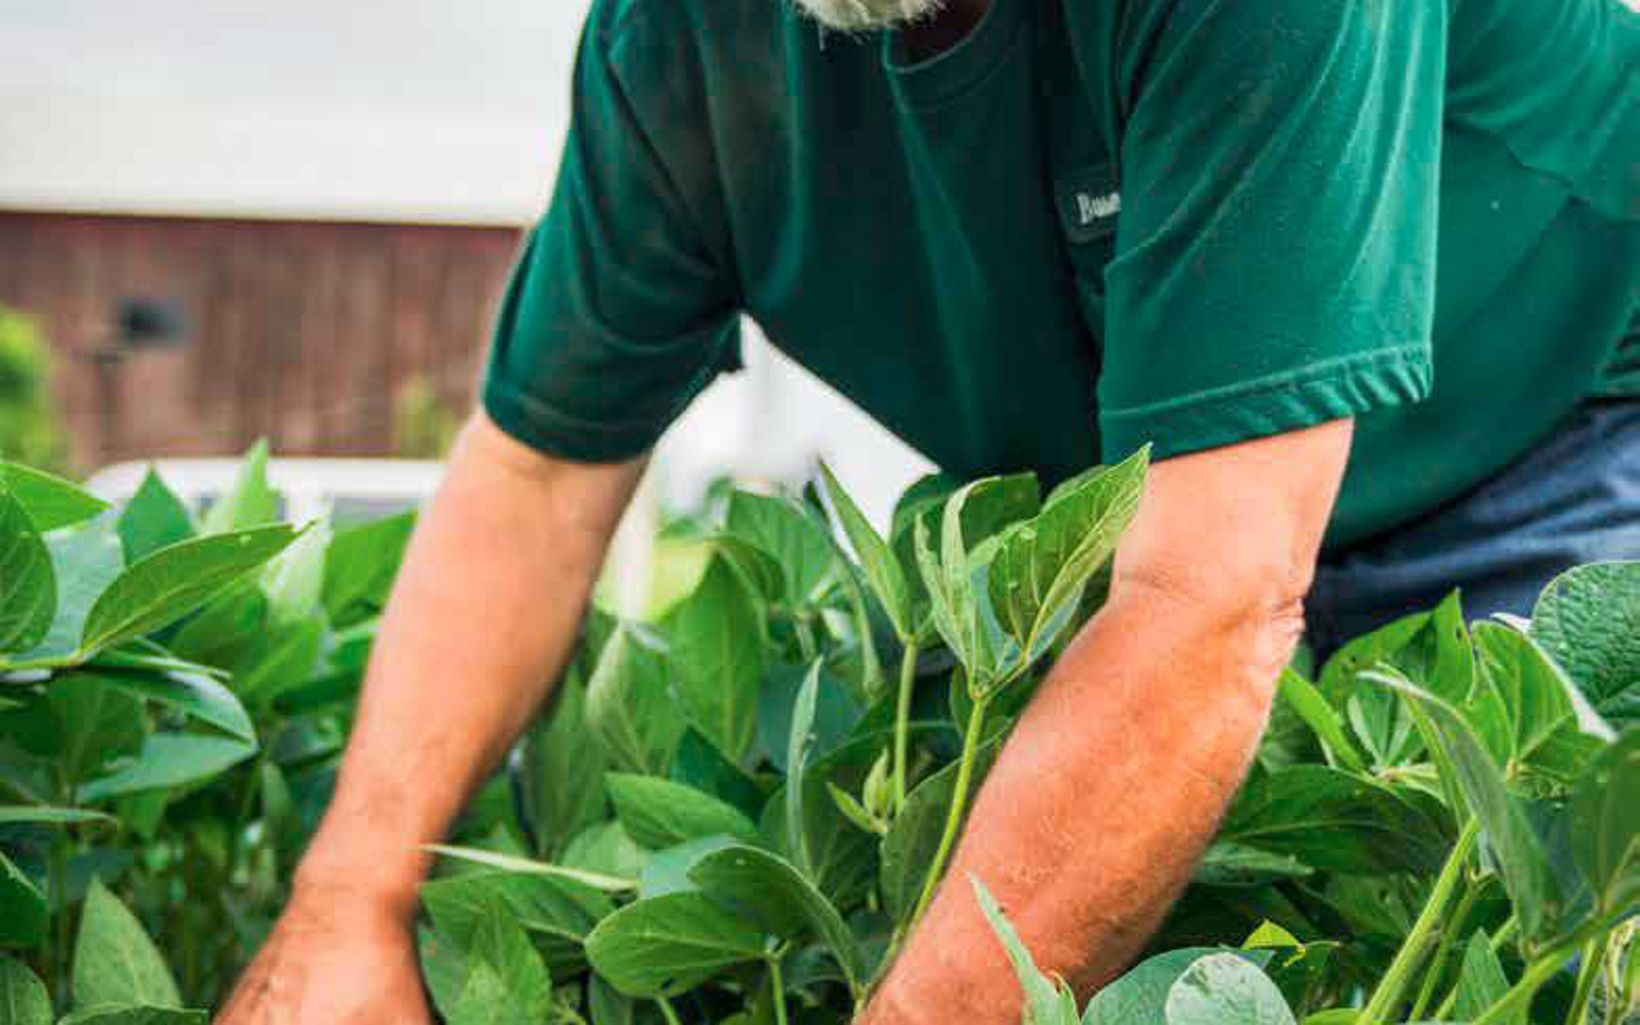 Closely cropped photo of a man in a green shirt bending over a row of crops. The leafy green plants reach up to his elbow.